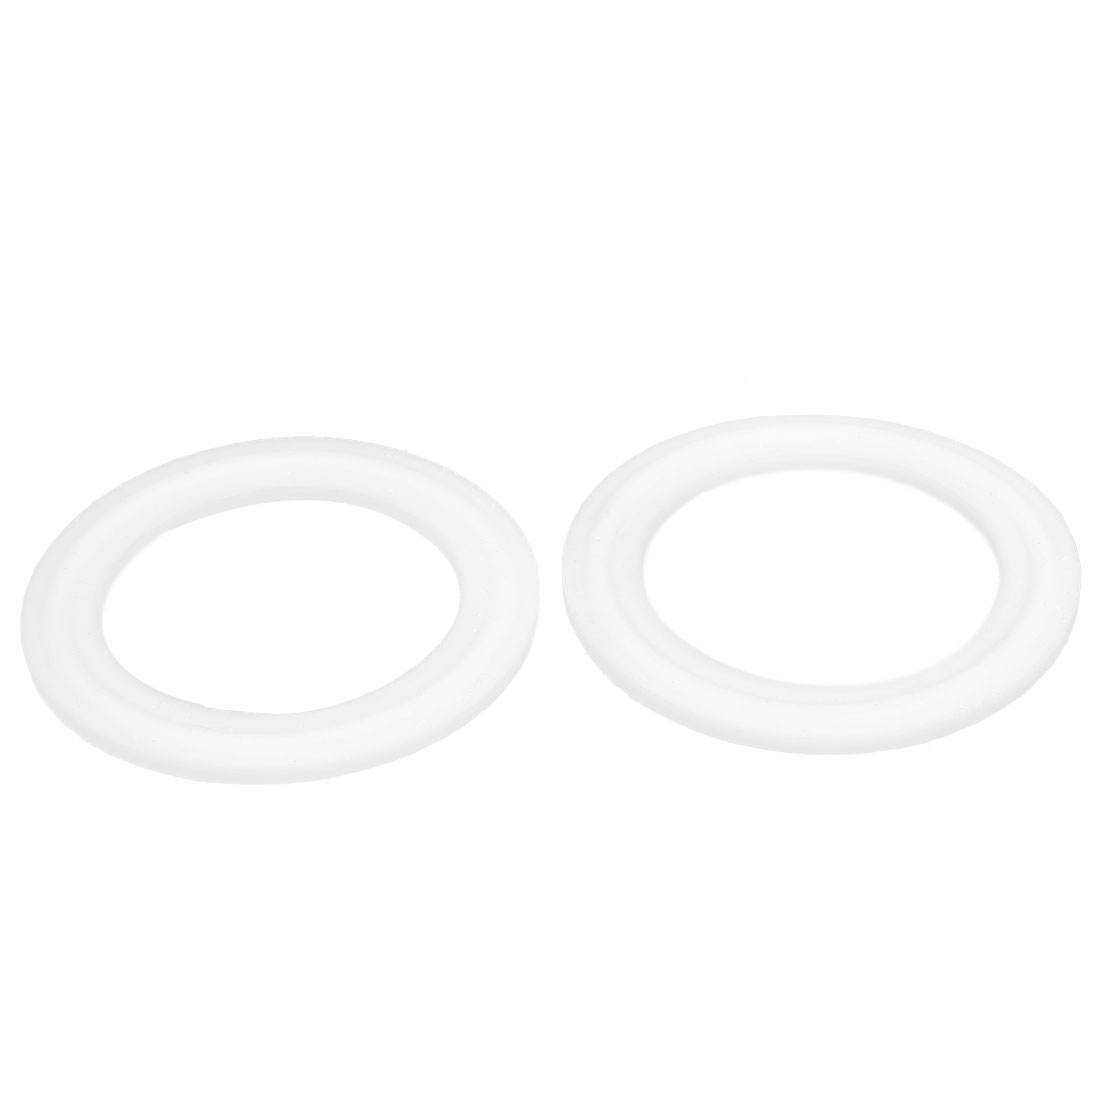 "38mm PTFE Gasket 2pcs for 1.5"" Clamp Sanitary Pipe Fittings Ferrules"